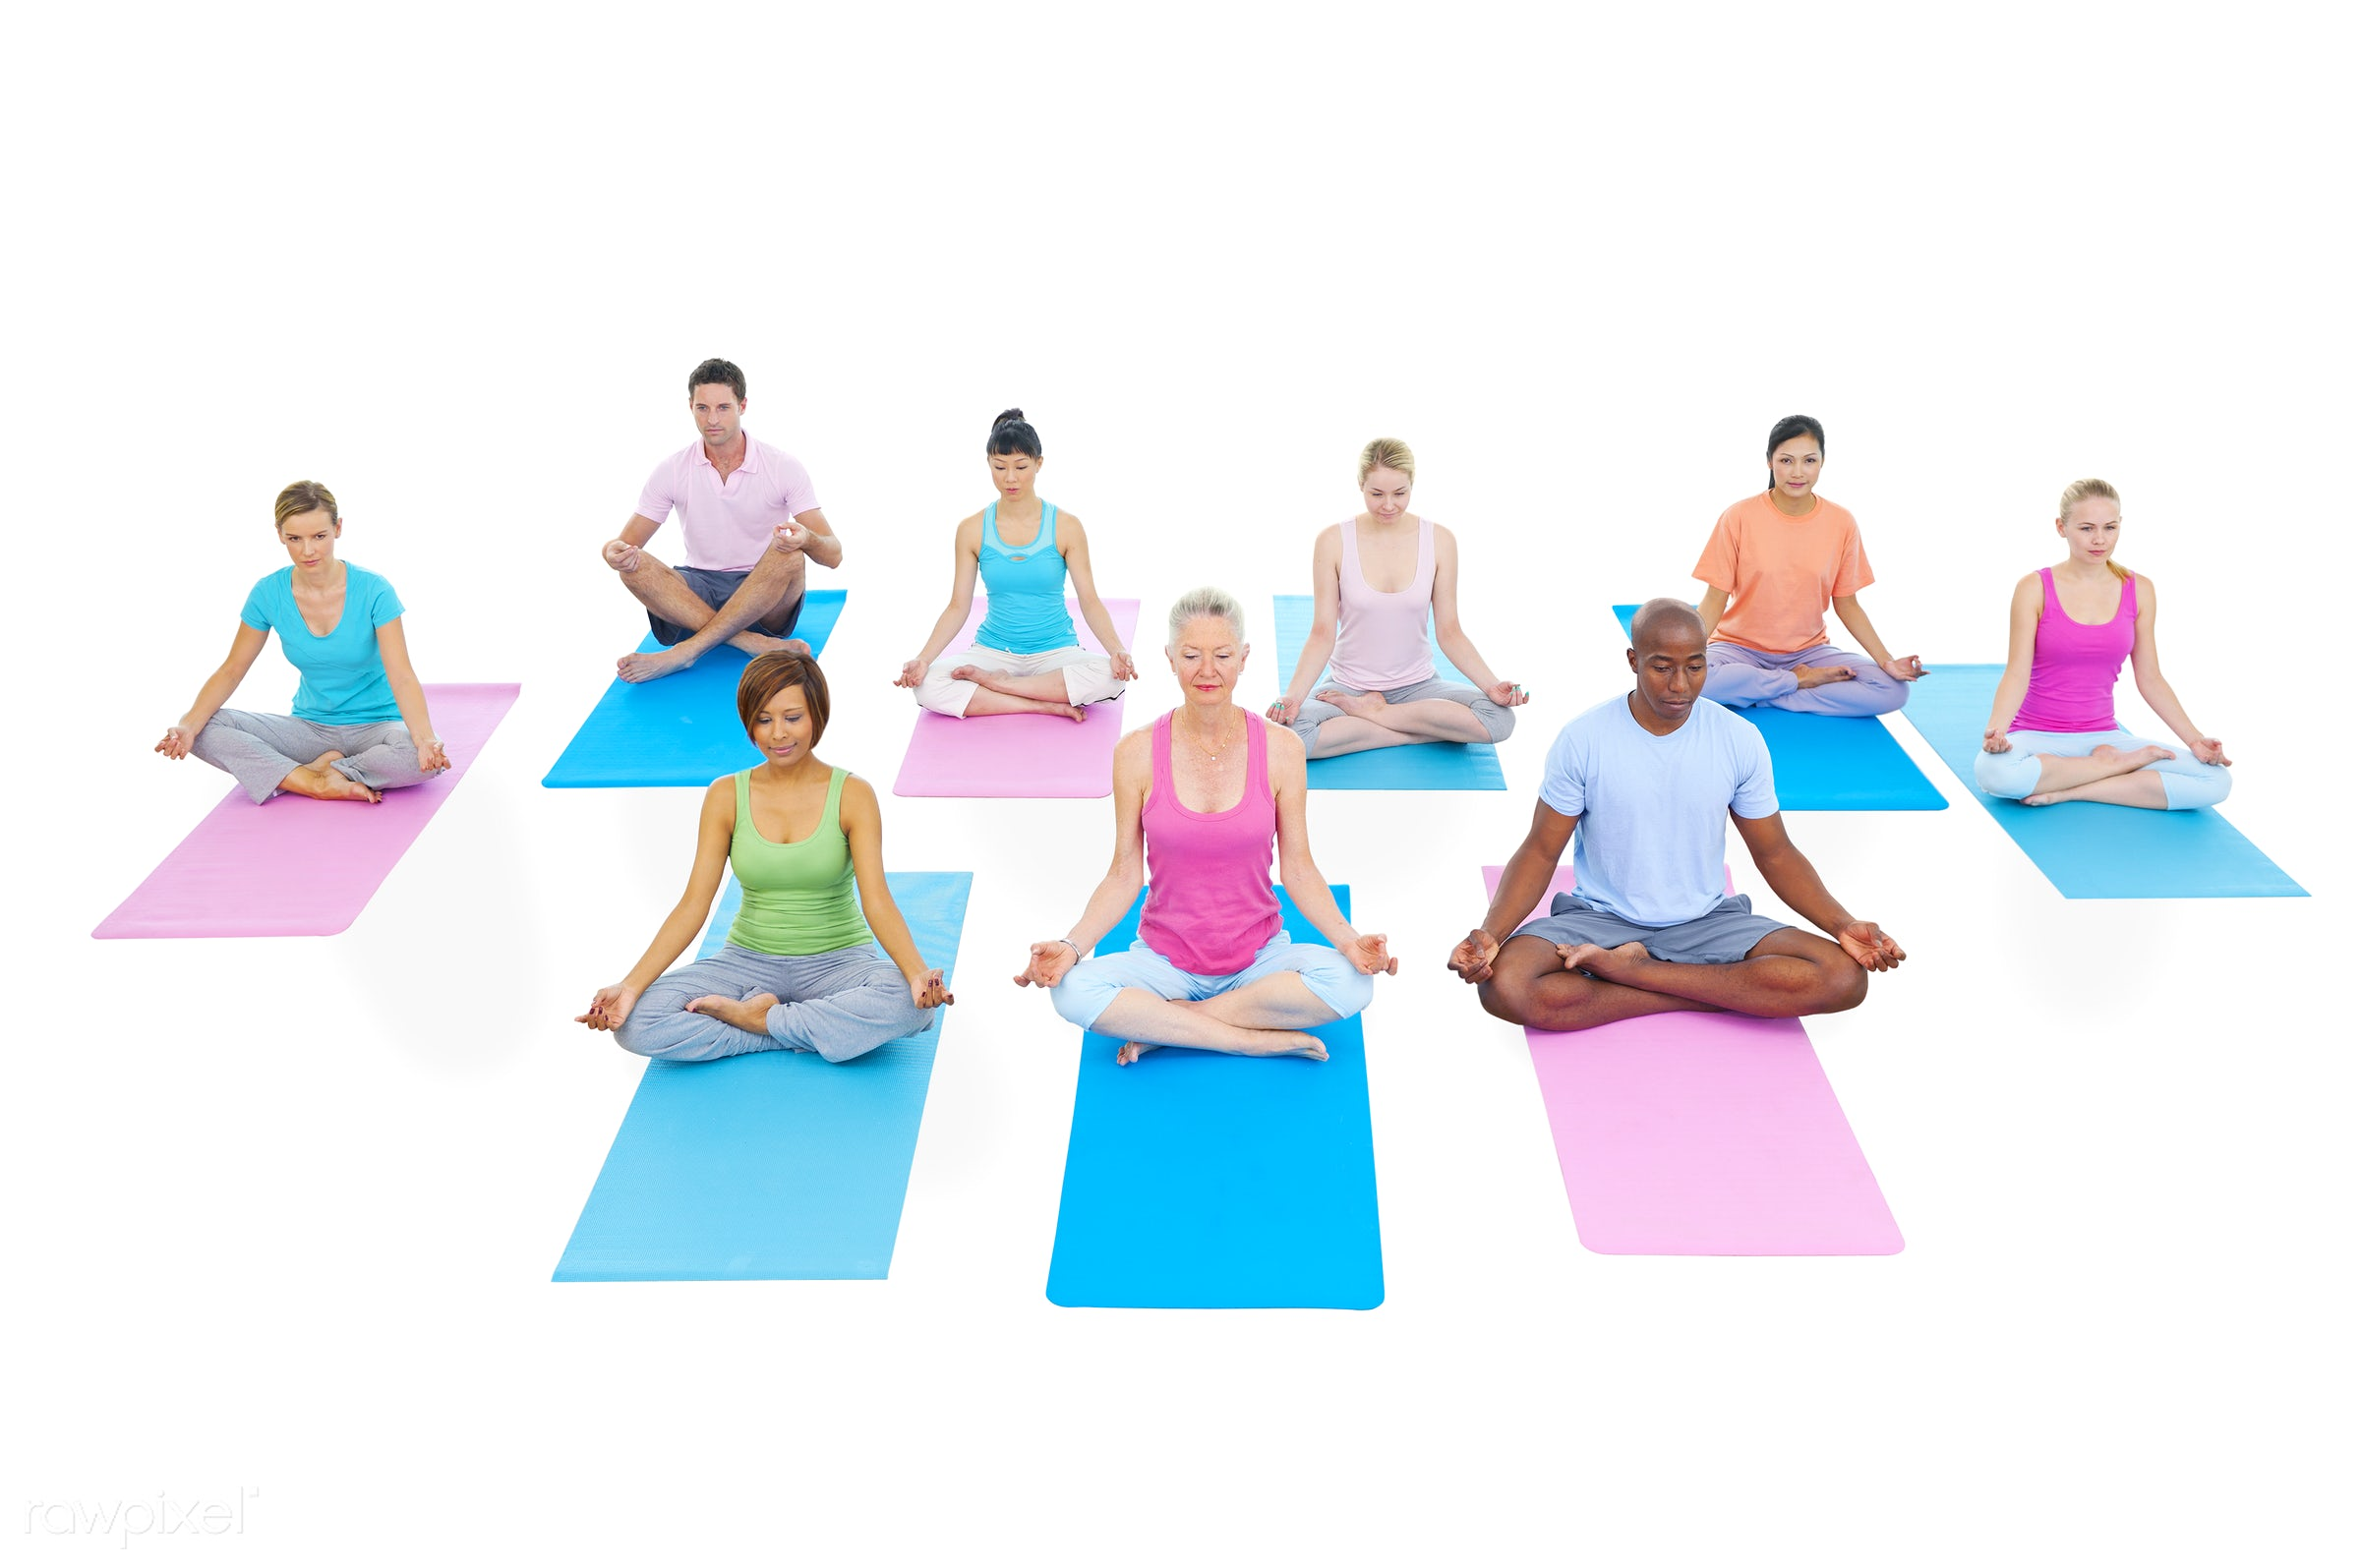 caucasian, lifestyles, action, adult, african descent, asian ethnicity, balance, body care, cheerful, exercise mat,...